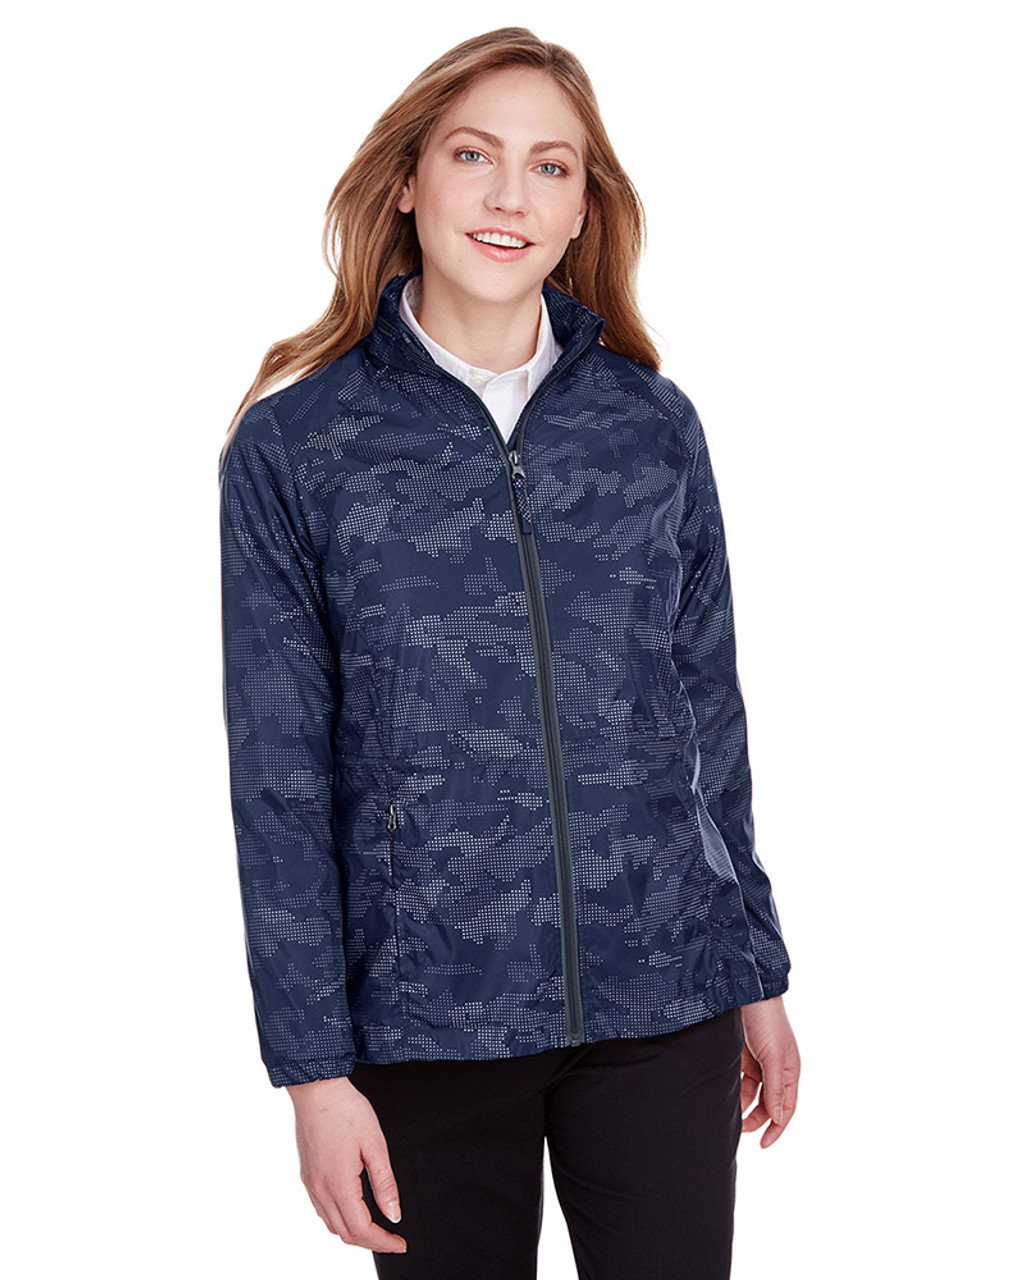 Classic Navy/Carbon - NE711W North End Ladies' Rotate Reflective Jacket | Blankclothing.ca